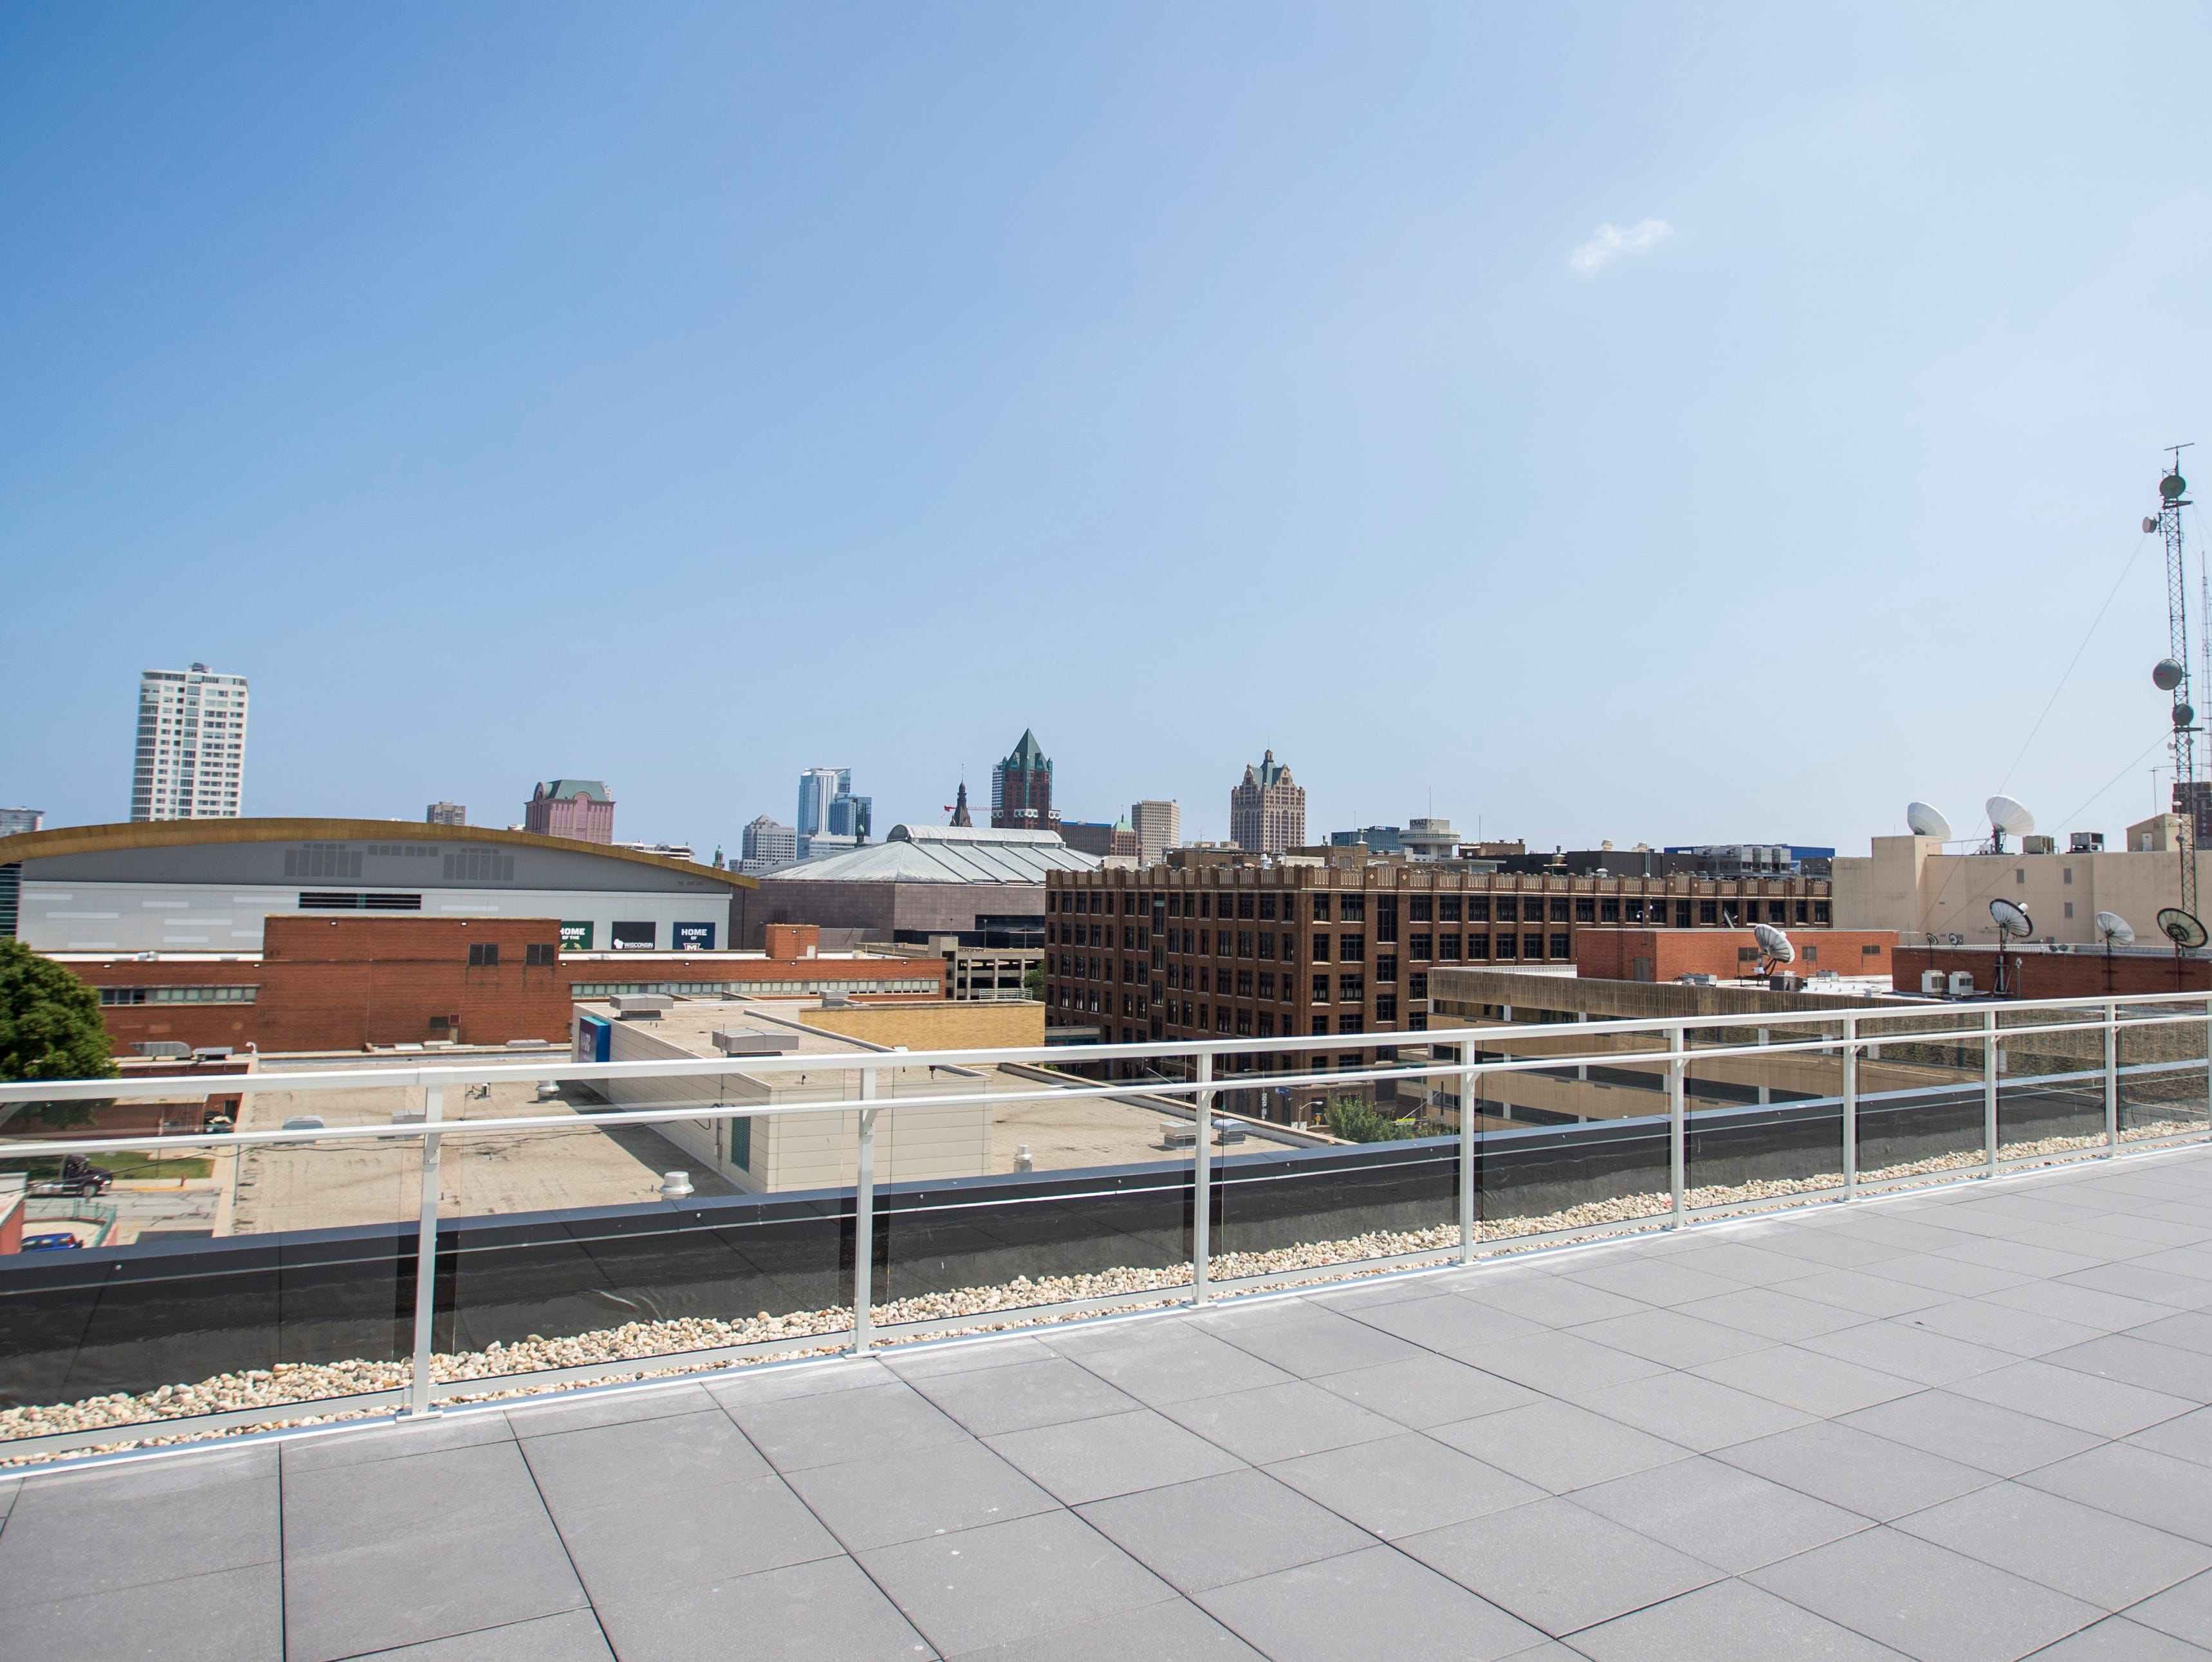 When it's finished, the rooftop view from The 42, which is home to Glass + Griddle and neighbor MKE Brewing, visitors will be able to sip brews and take in sweeping views.